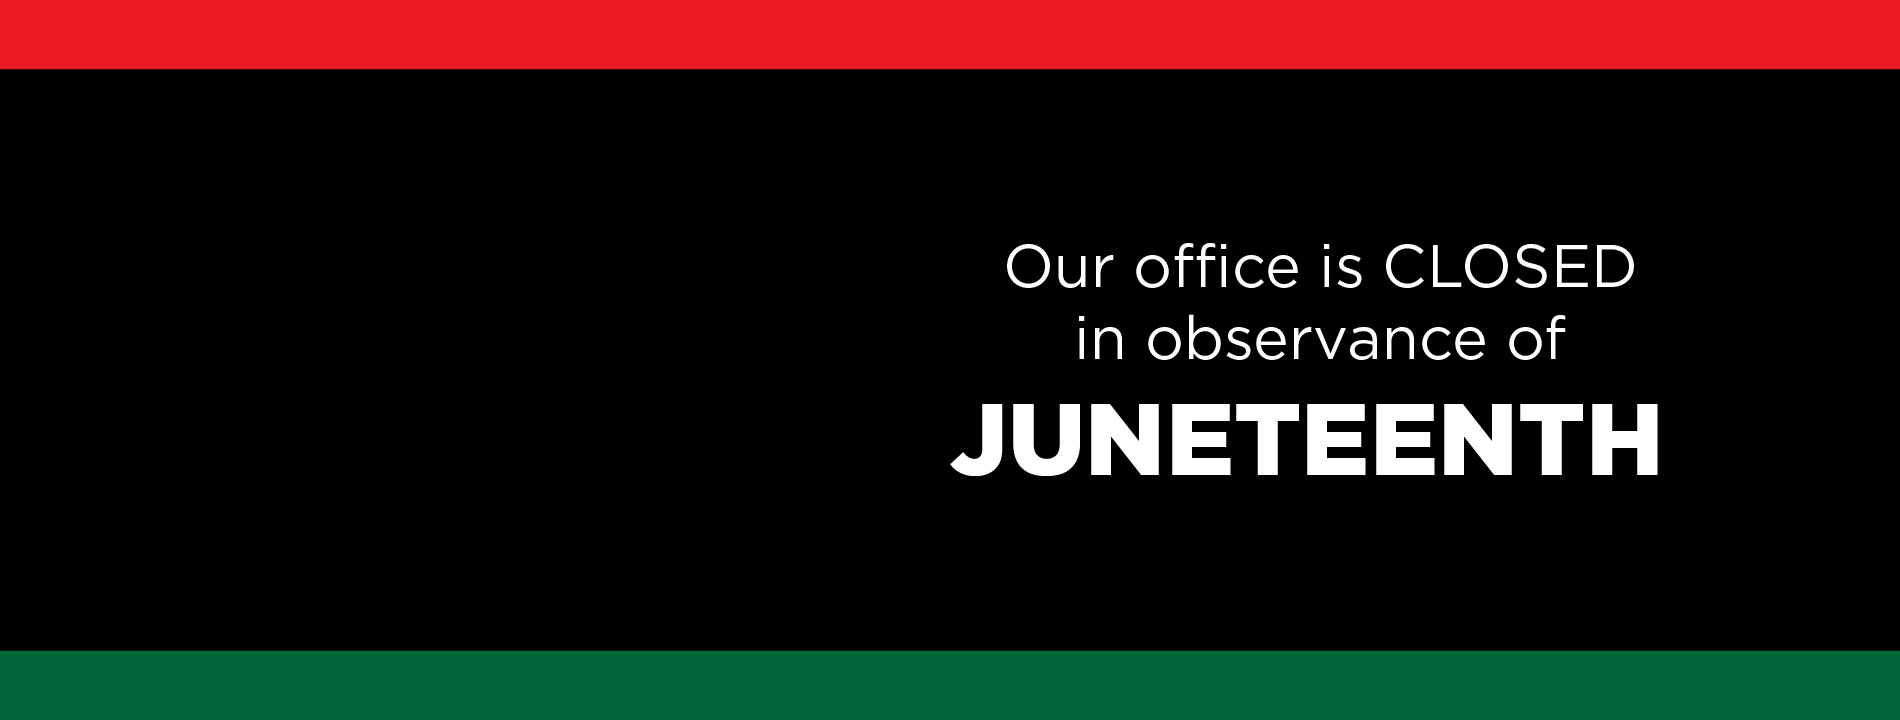 Our office is closed in observance of Juneteeth